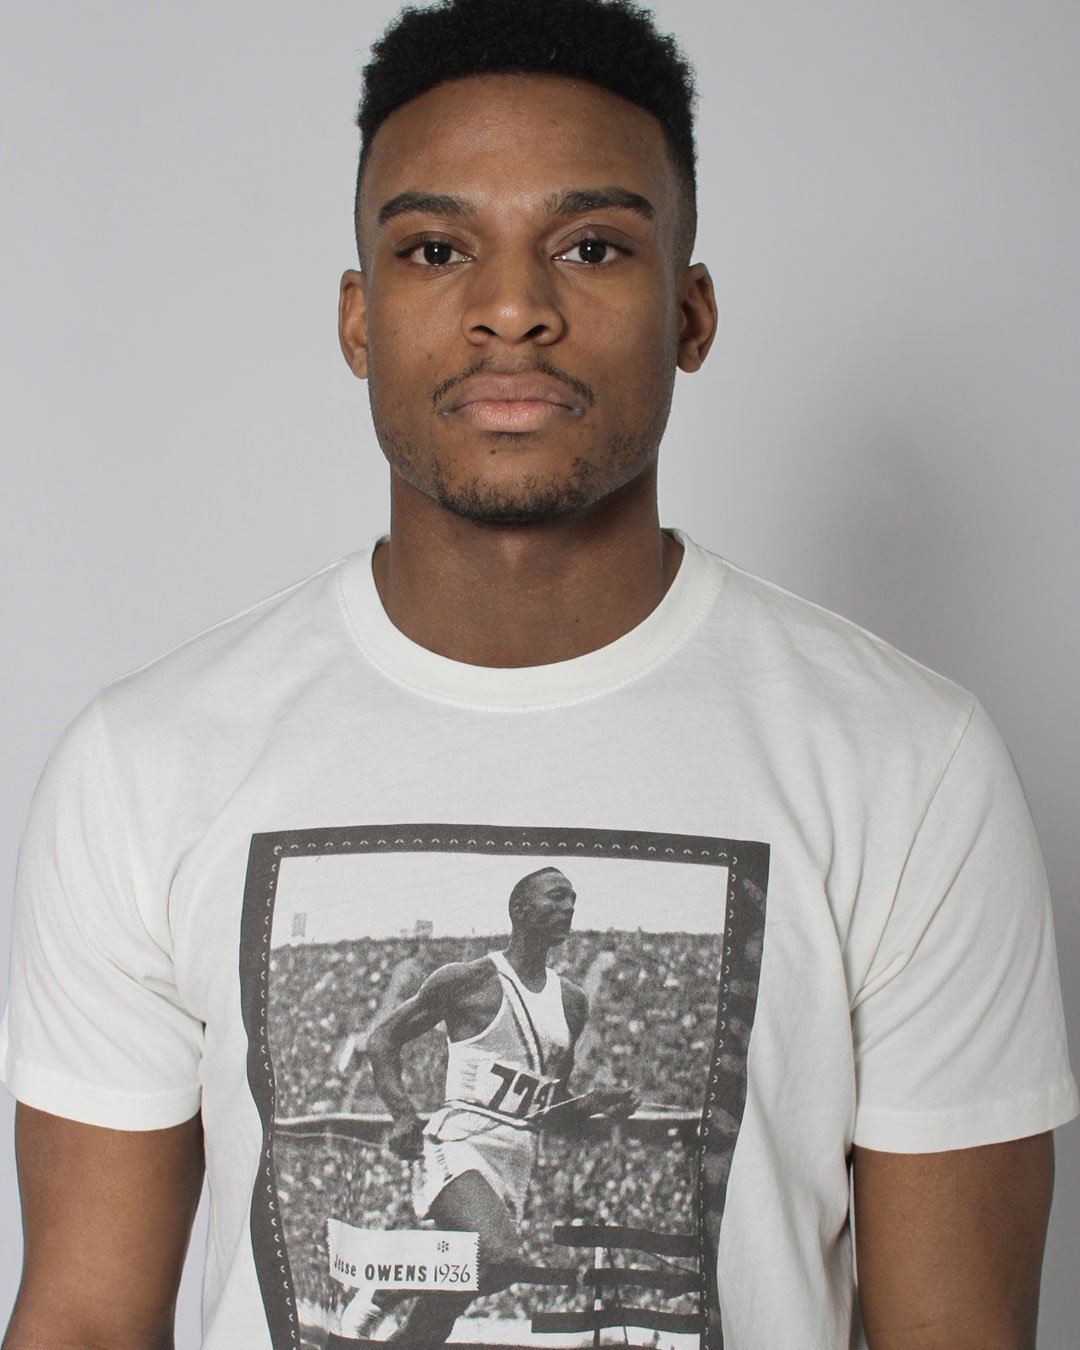 BHT - Jesse Owens Photo Tee - Roots of Inc dba Roots of Fight